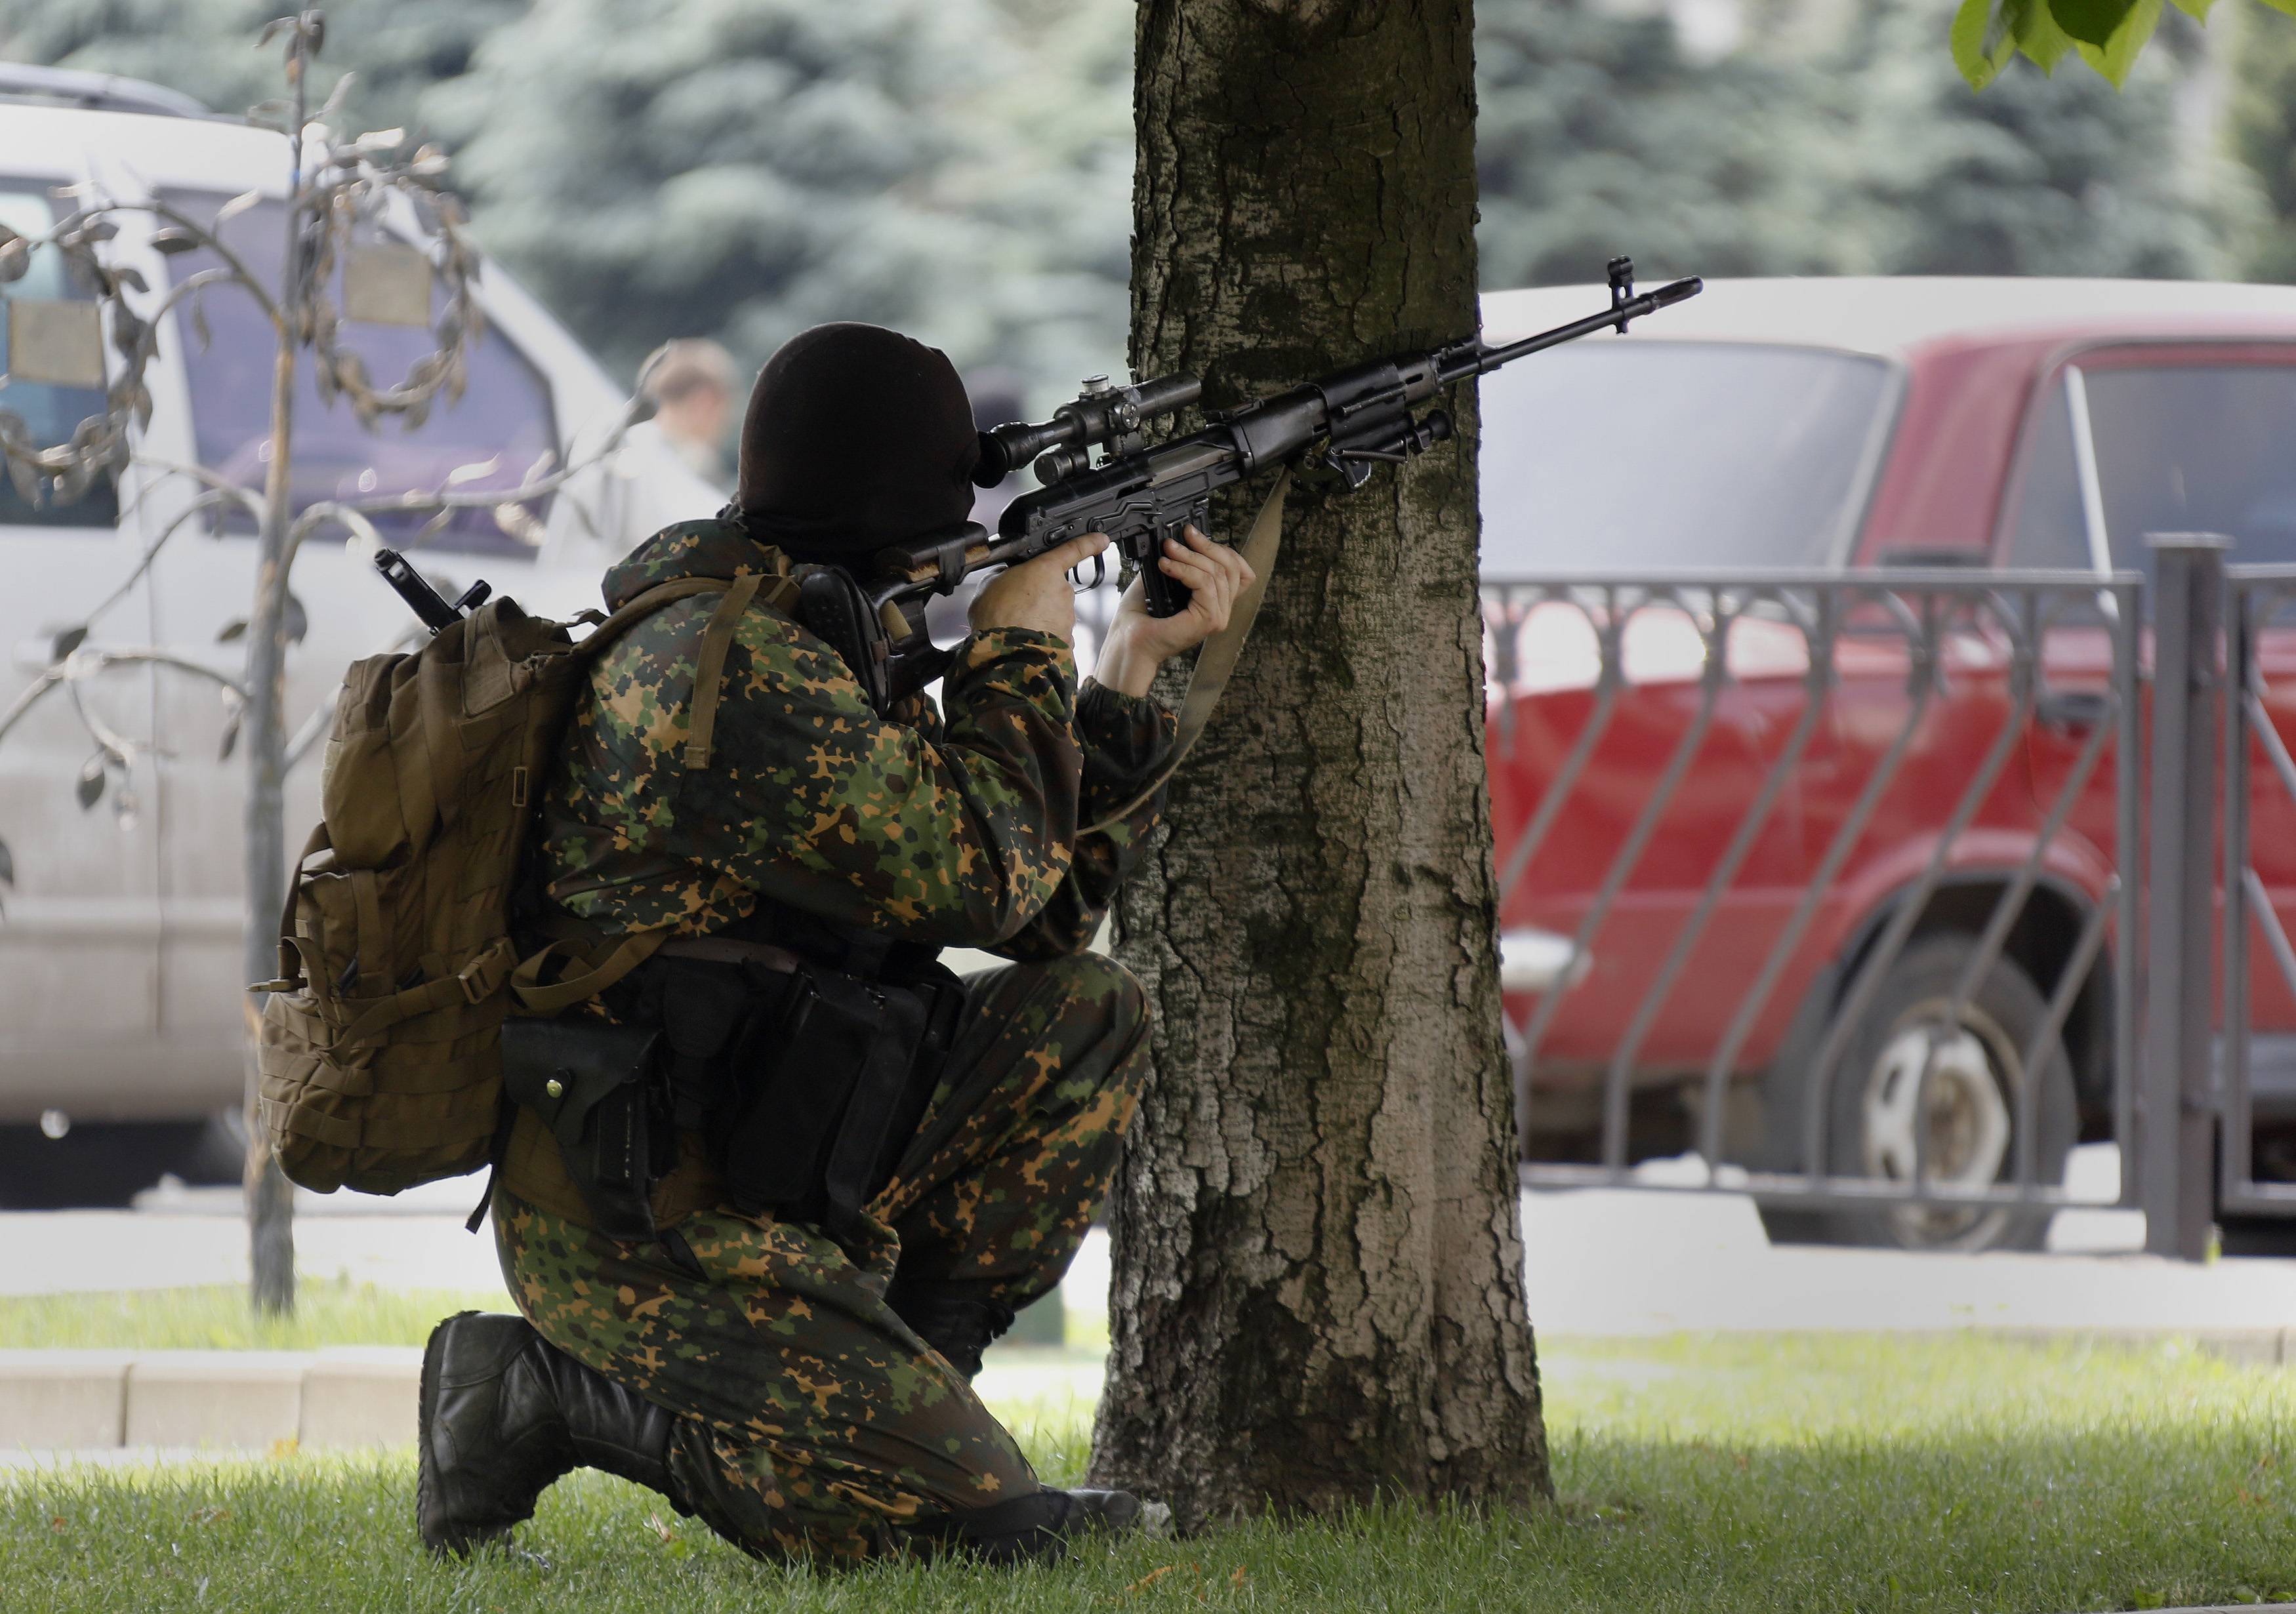 A pro-Russian rebel aims his rifle towards the local administration building in Donetsk